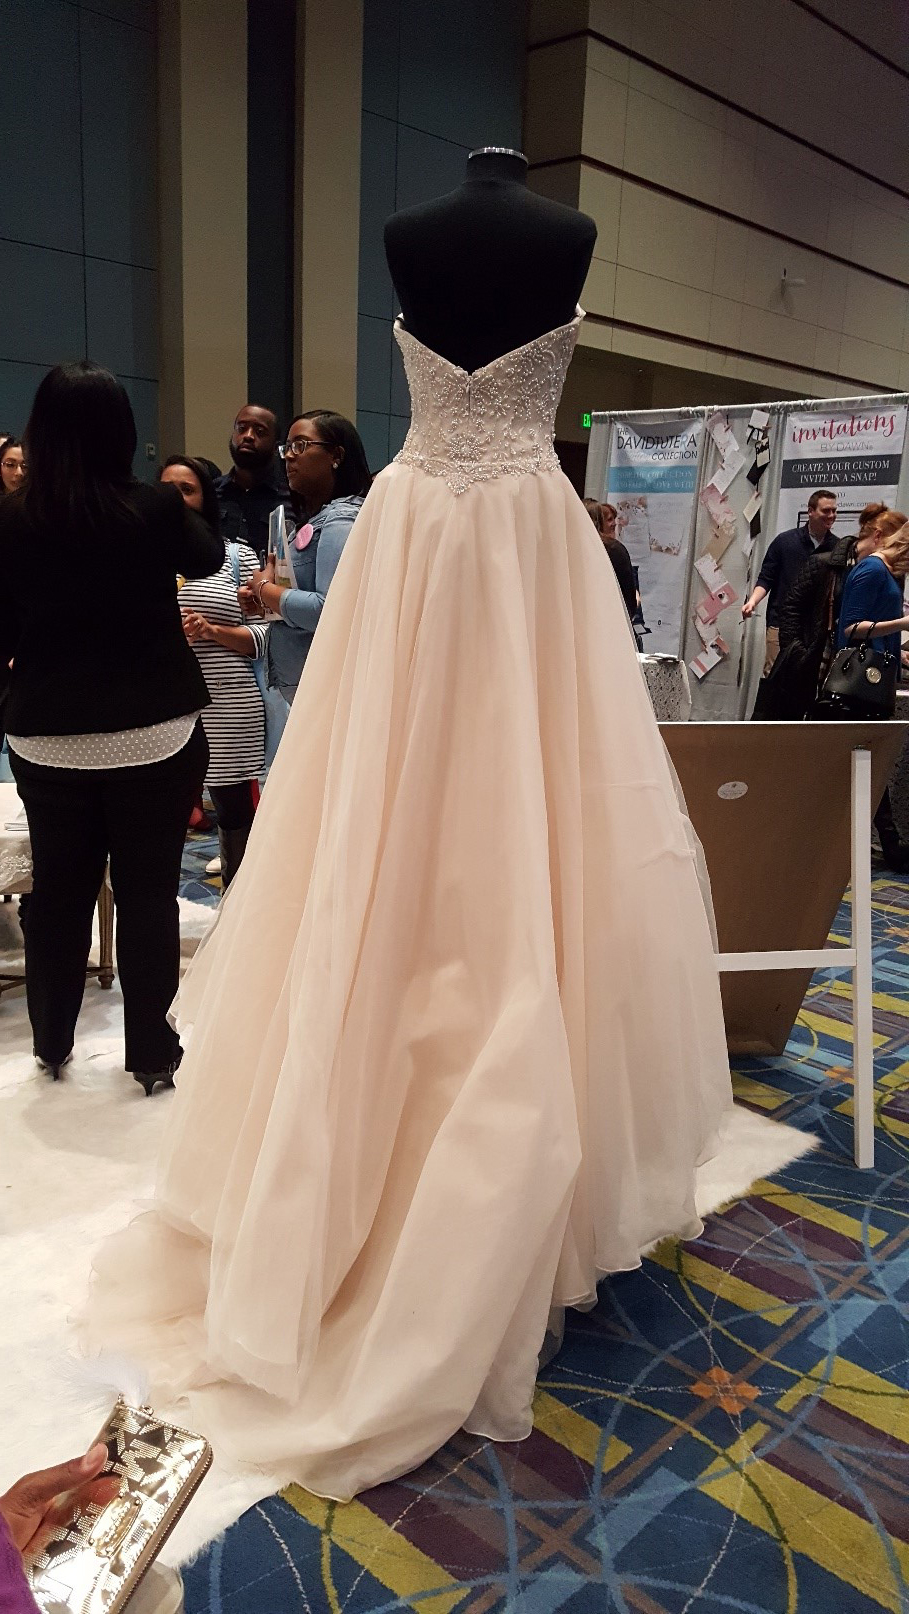 A blush colored wedding dress ensemble